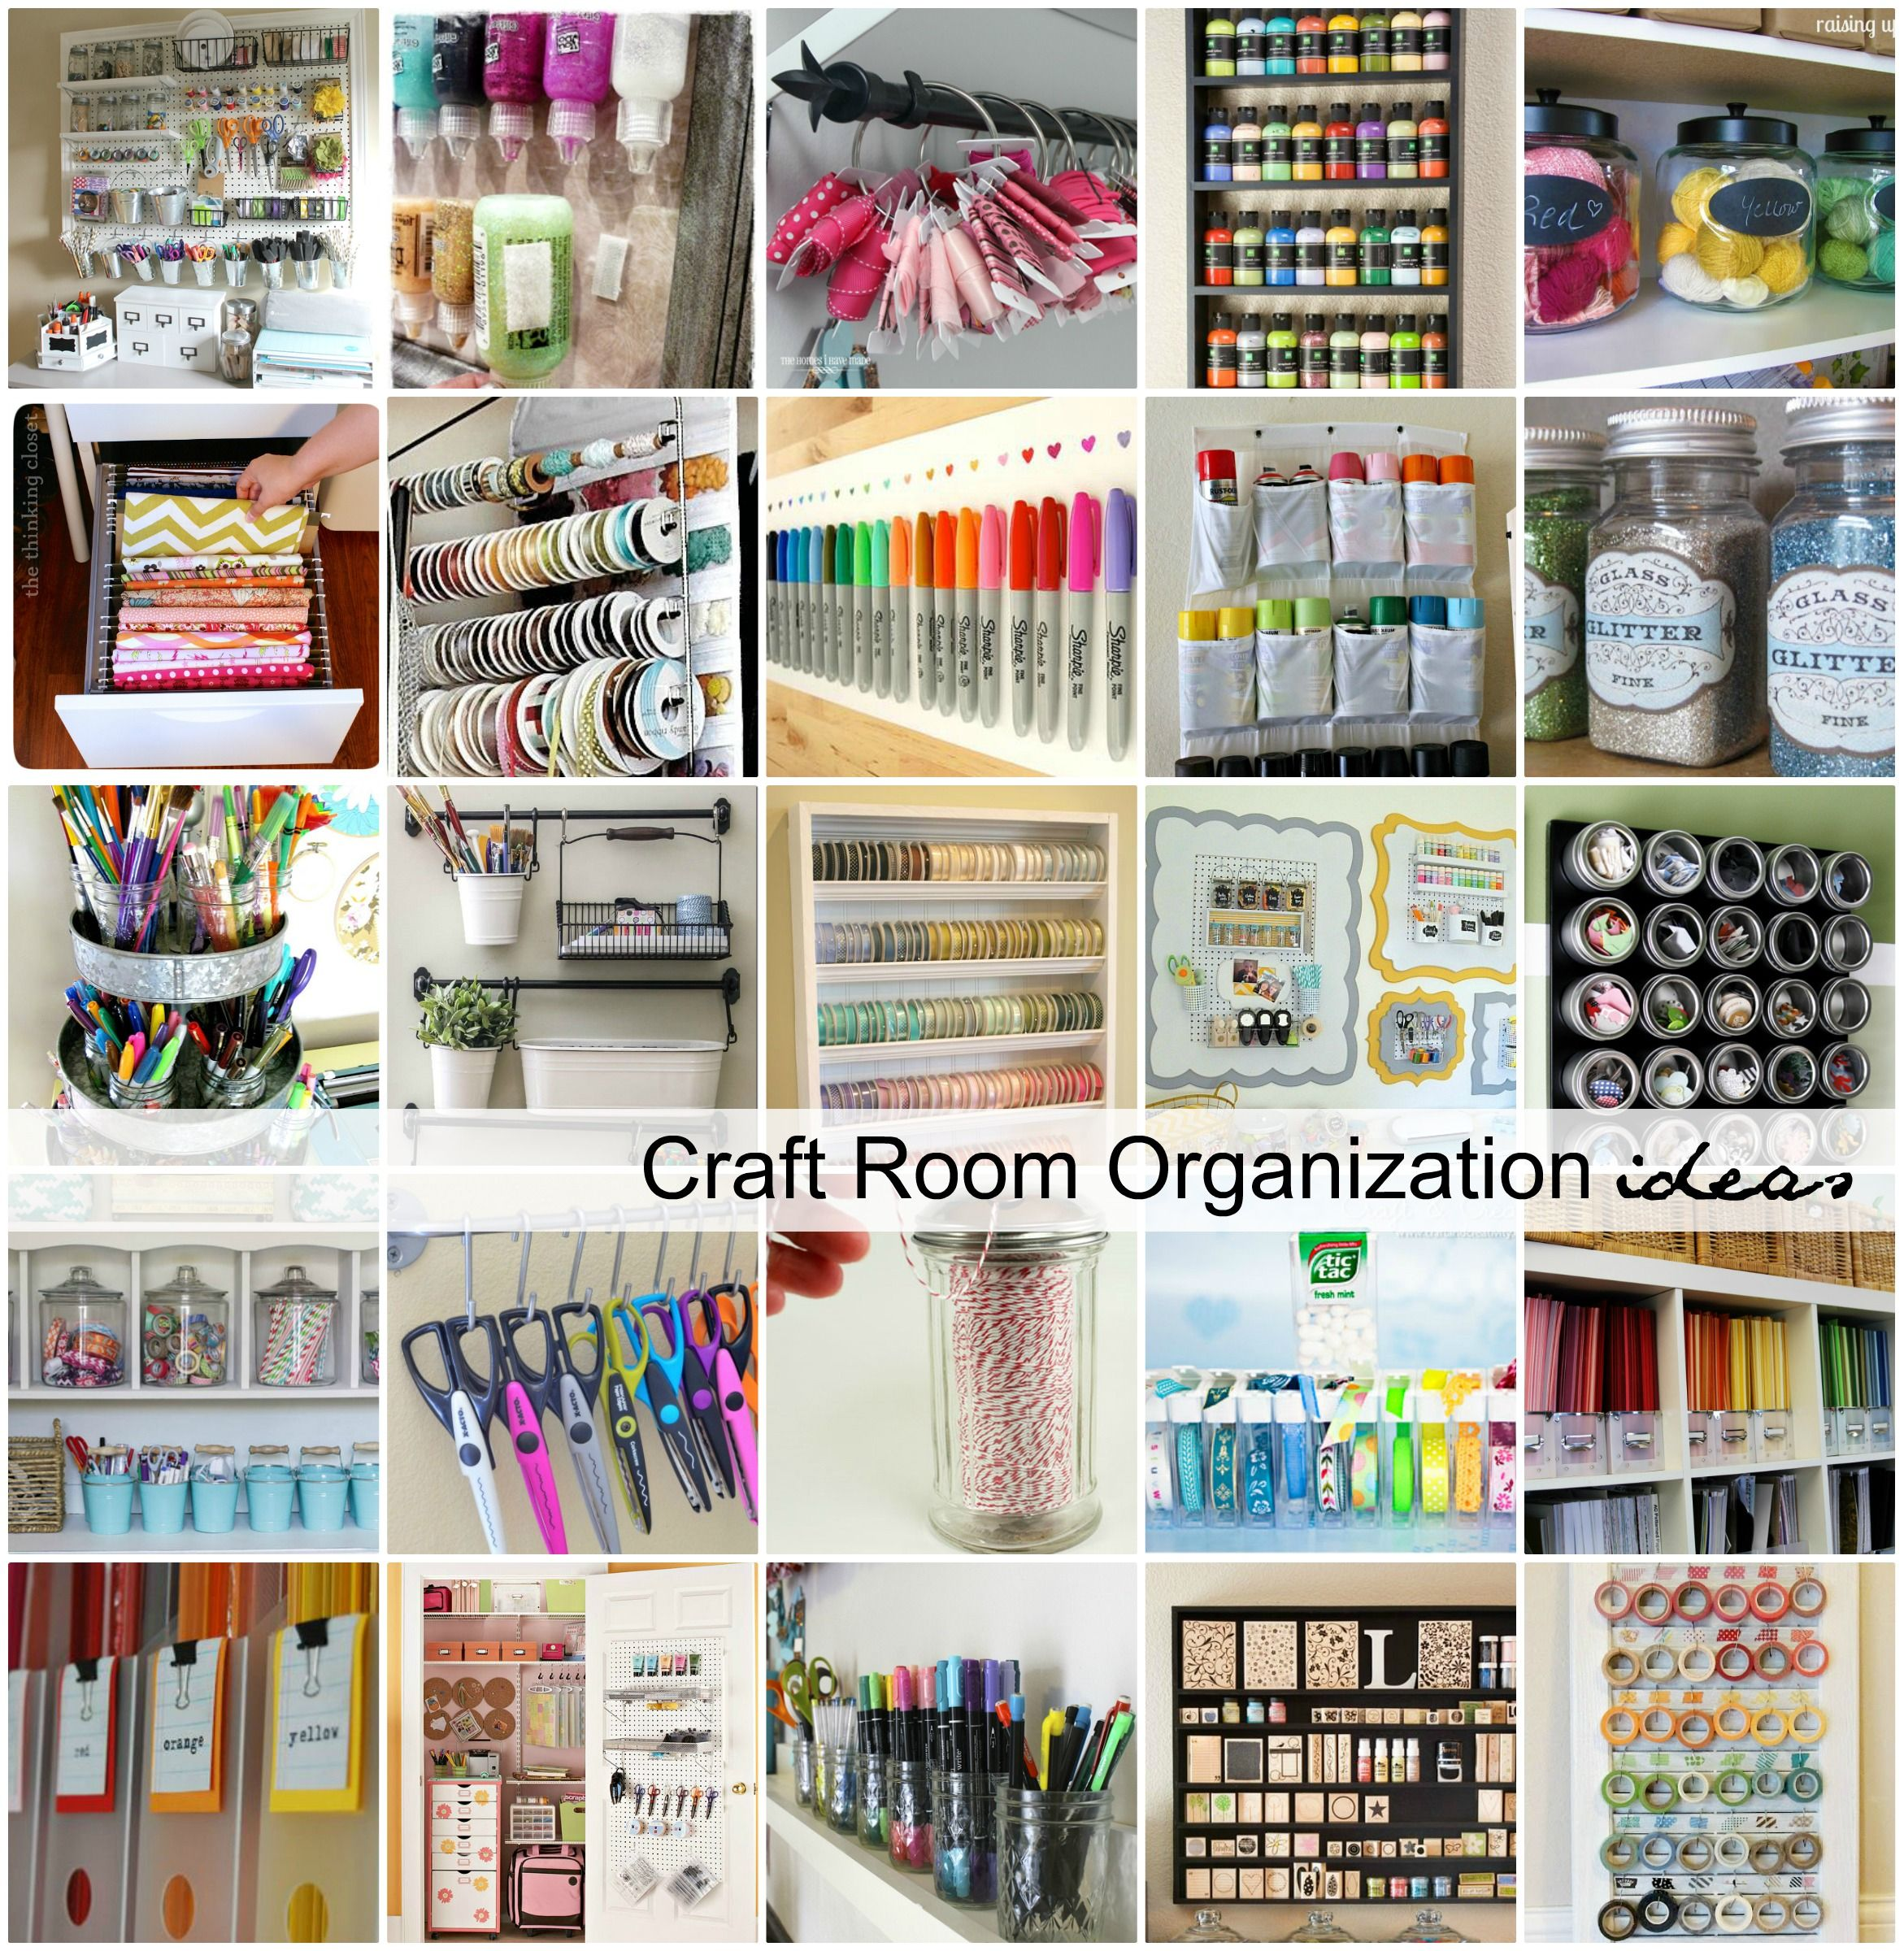 craft room organization and storage ideas small corner room whether you have an entire room closet or just a small corner in your home